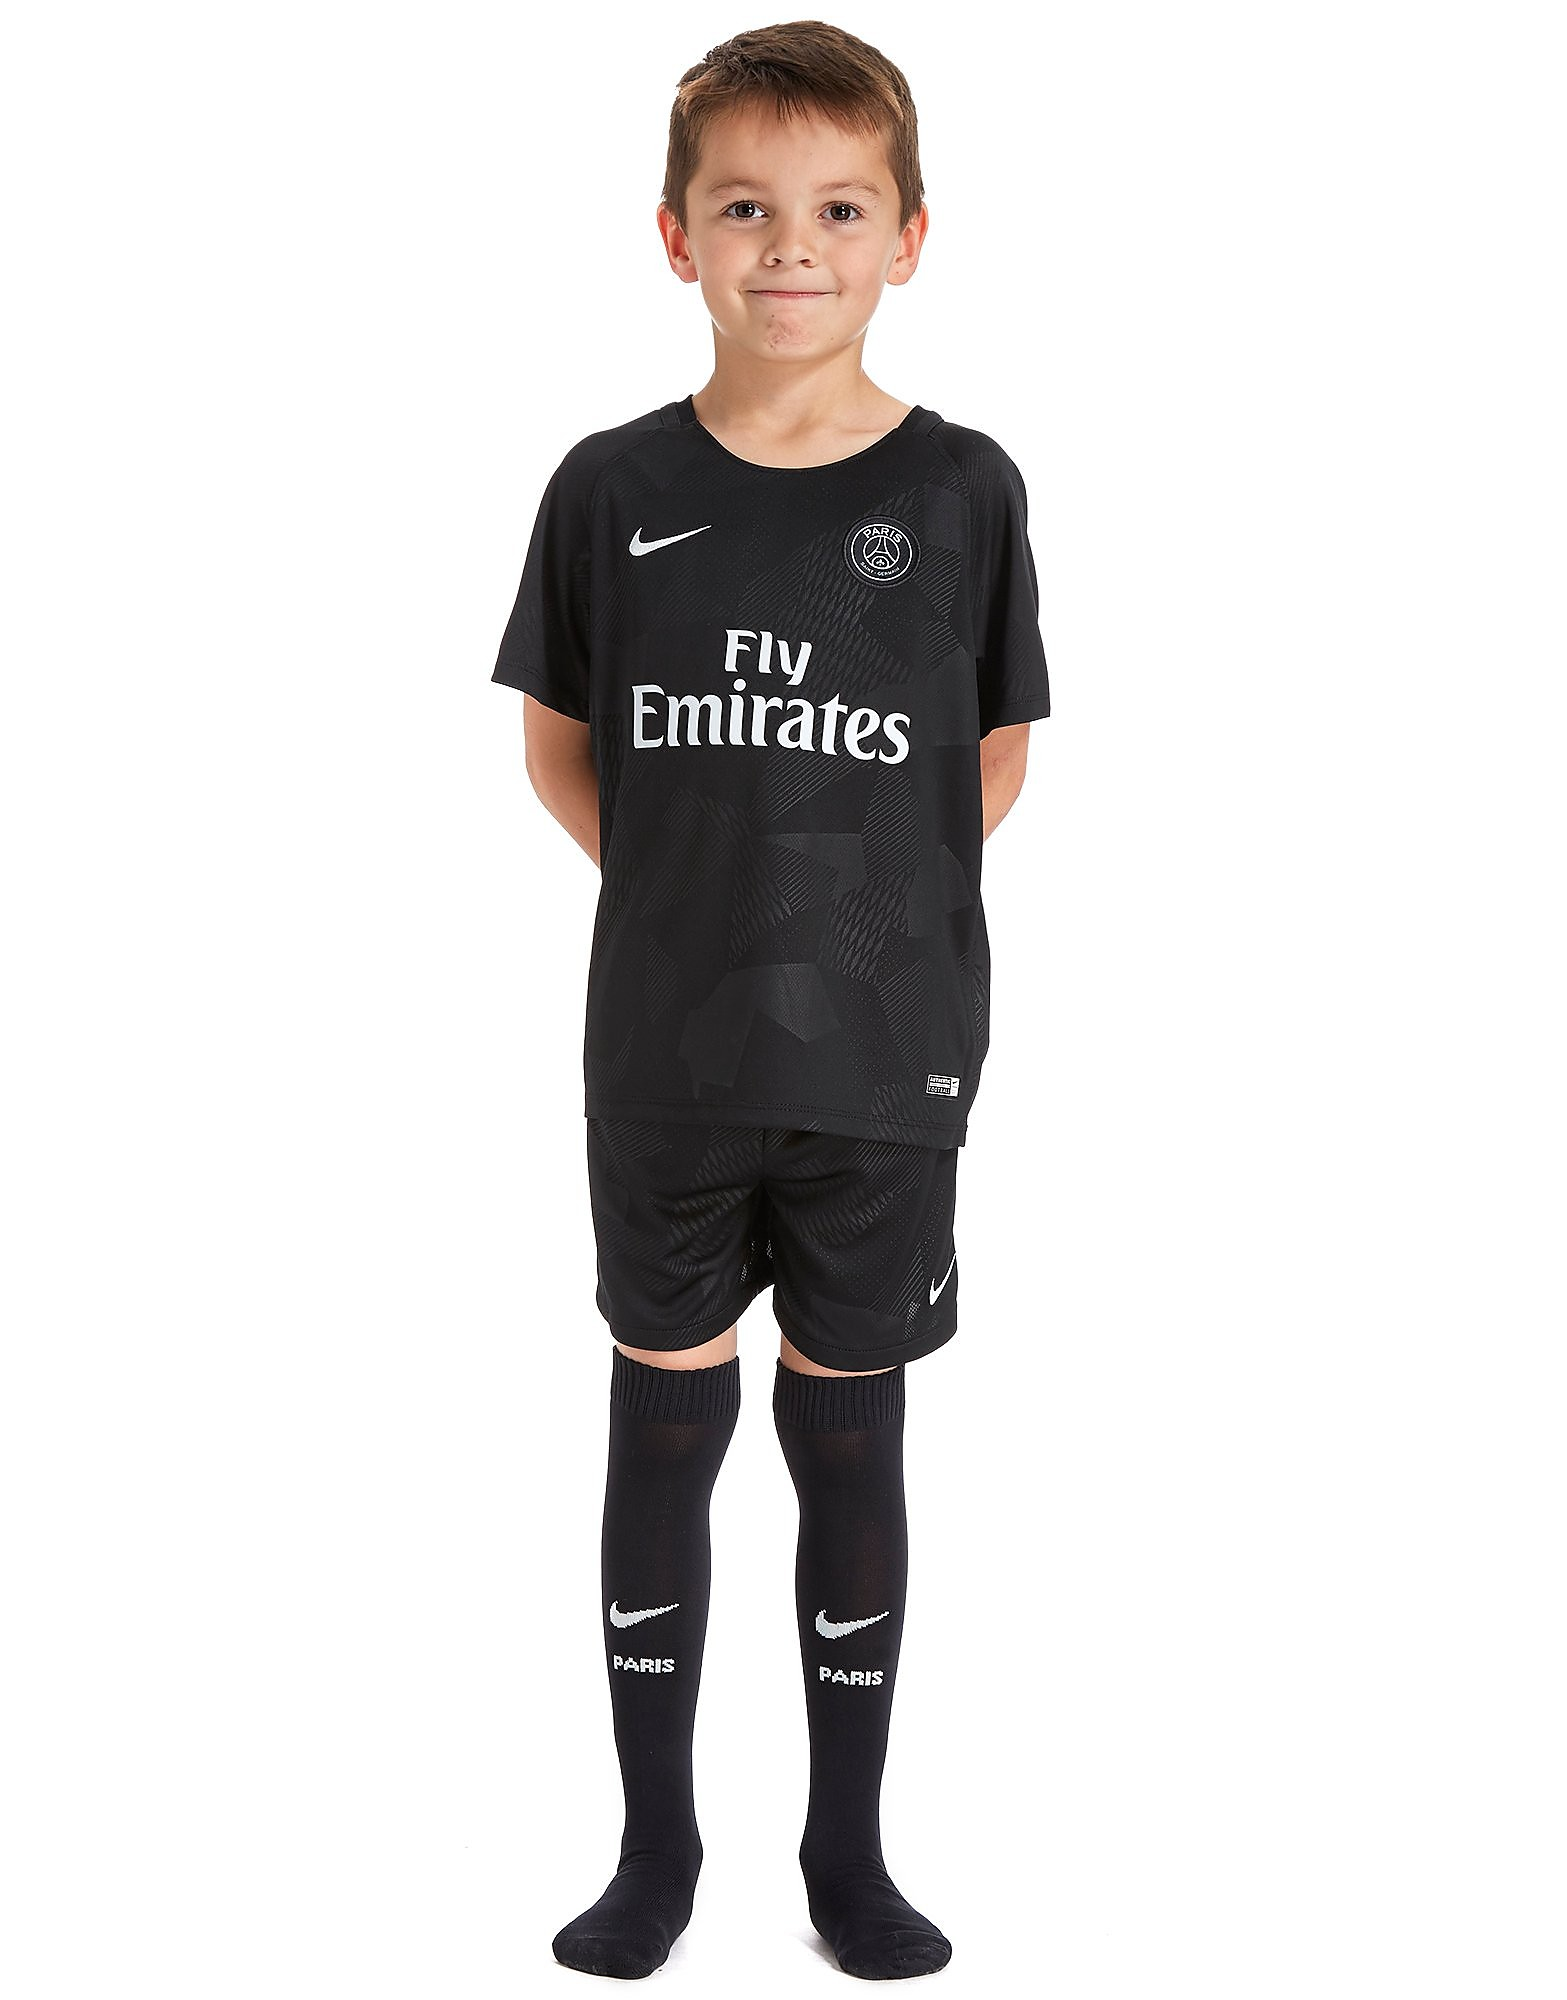 Nike Paris Saint Germain 2017/18 Third Kit Children